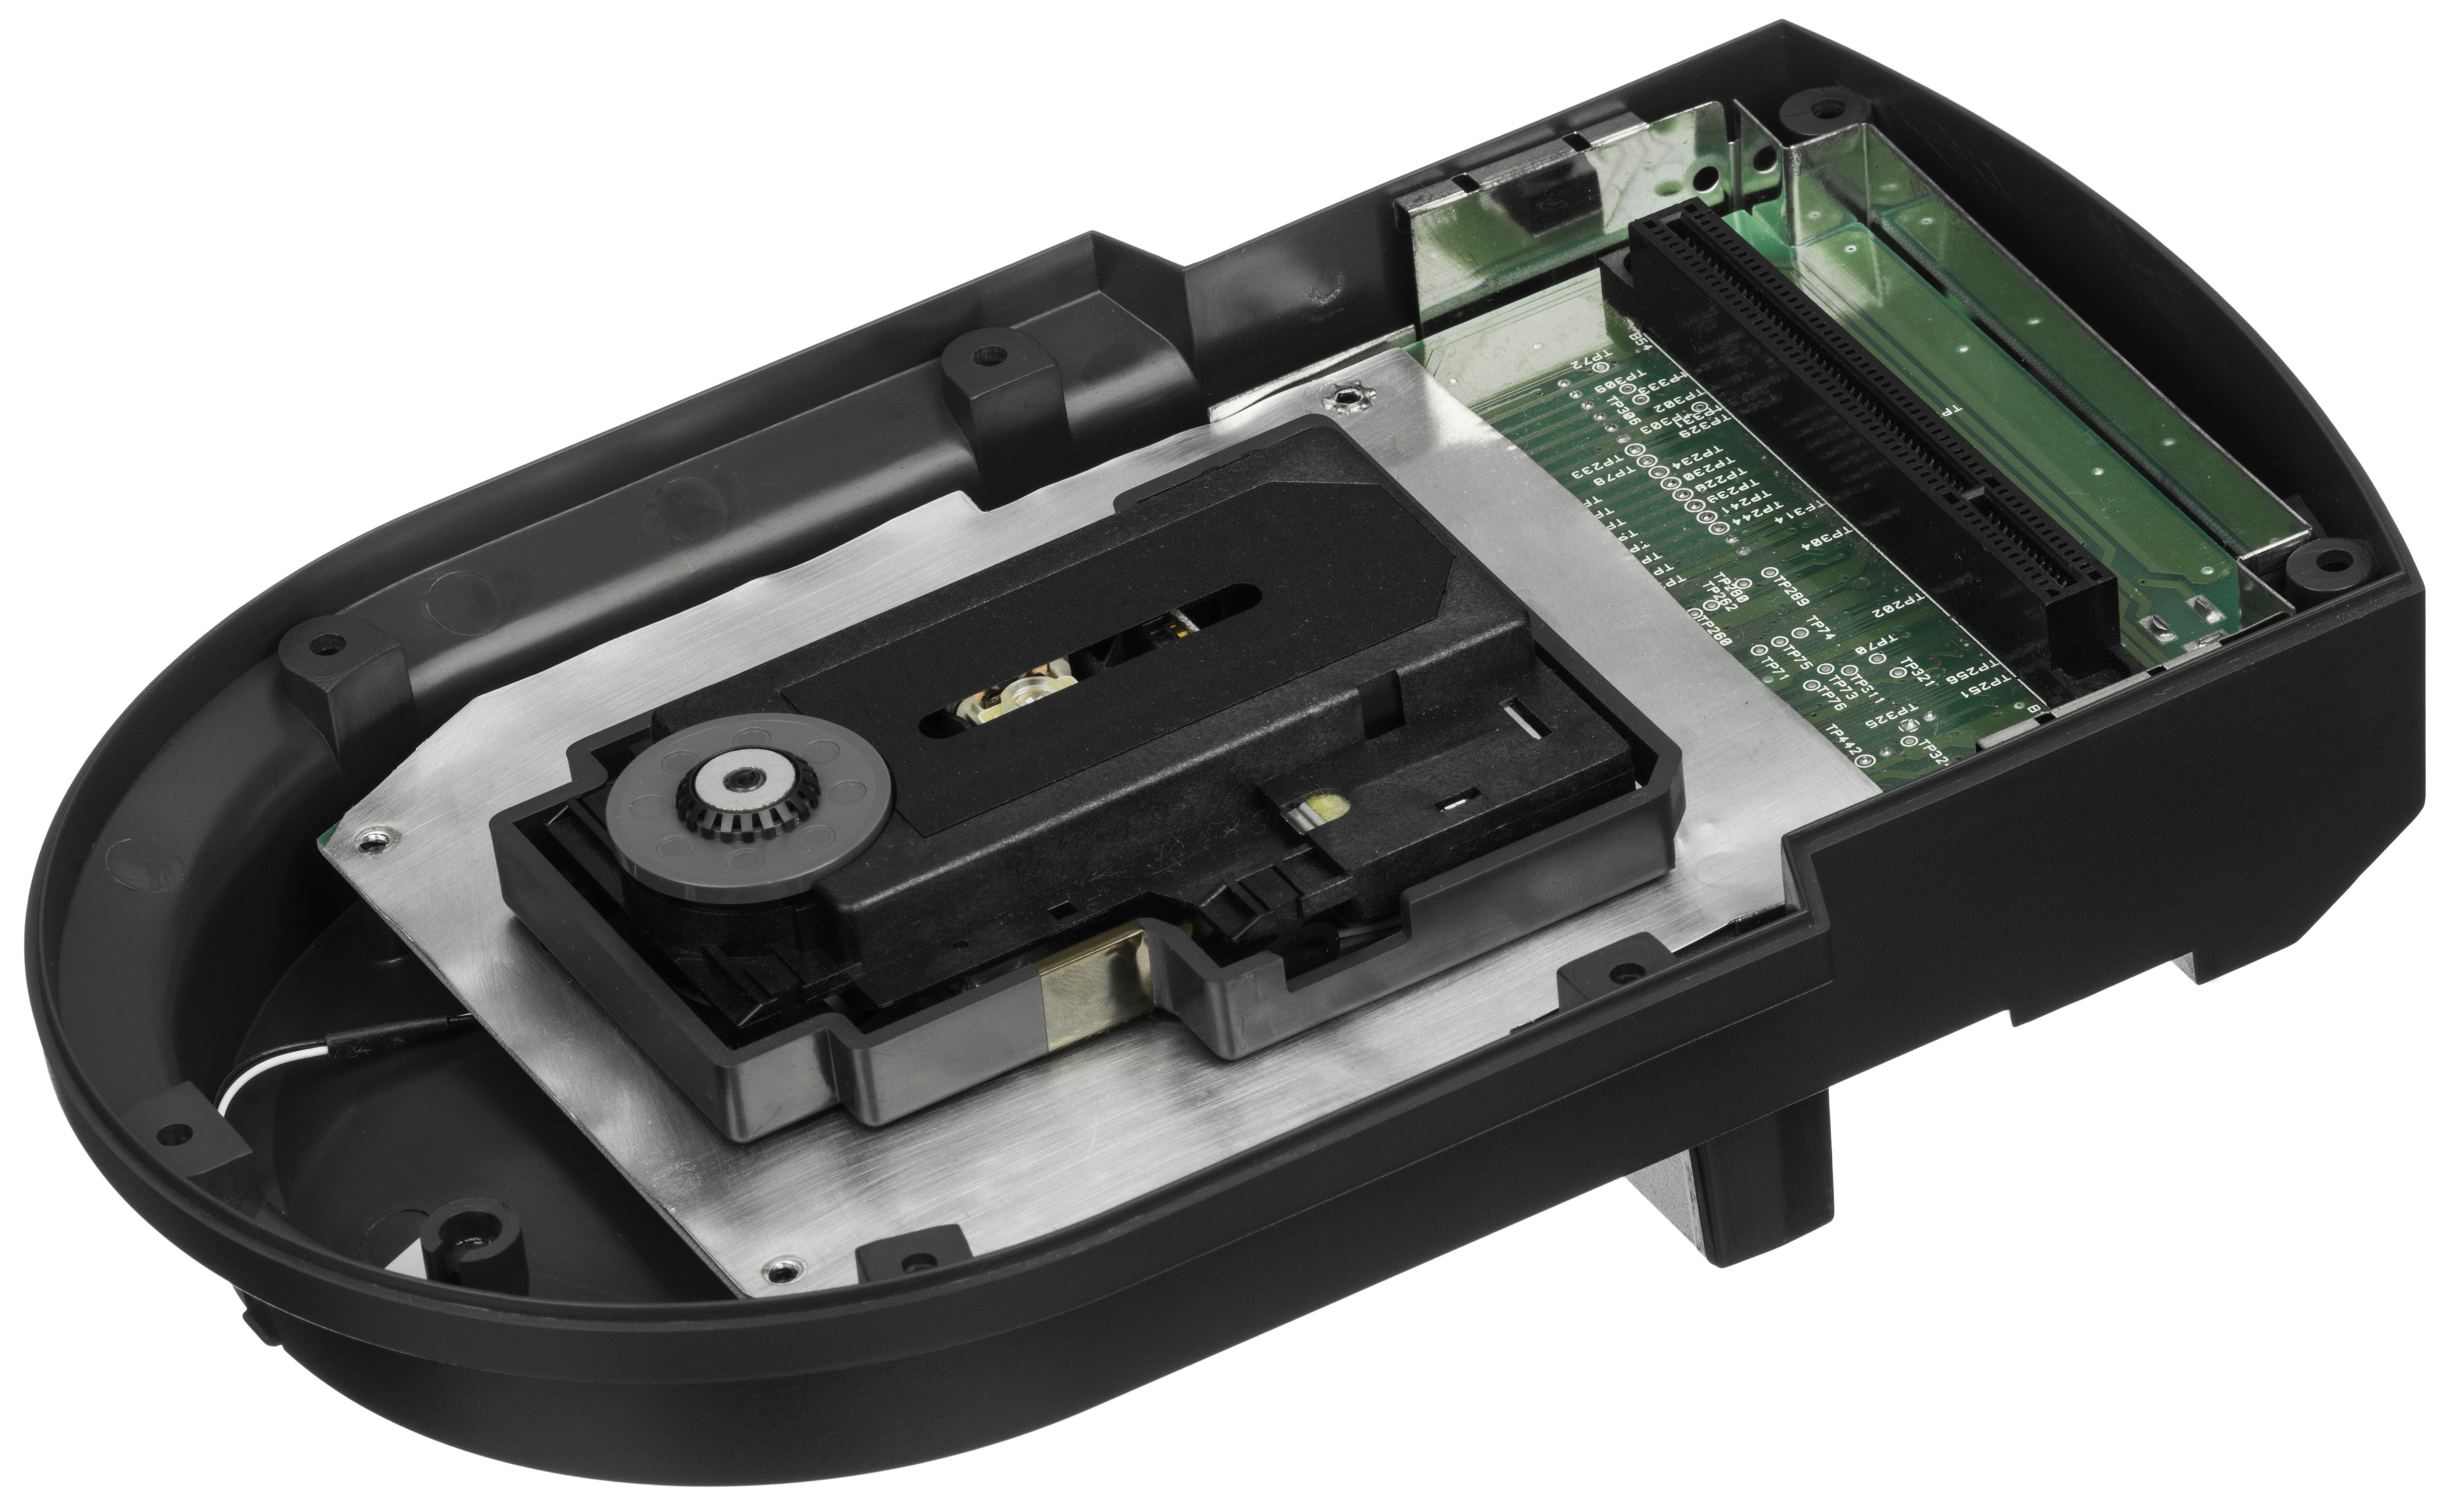 cartridge slot. It has a pass-through slot on the top for games cartridges or an optional Memory Track cart, which would allowed for game saving when